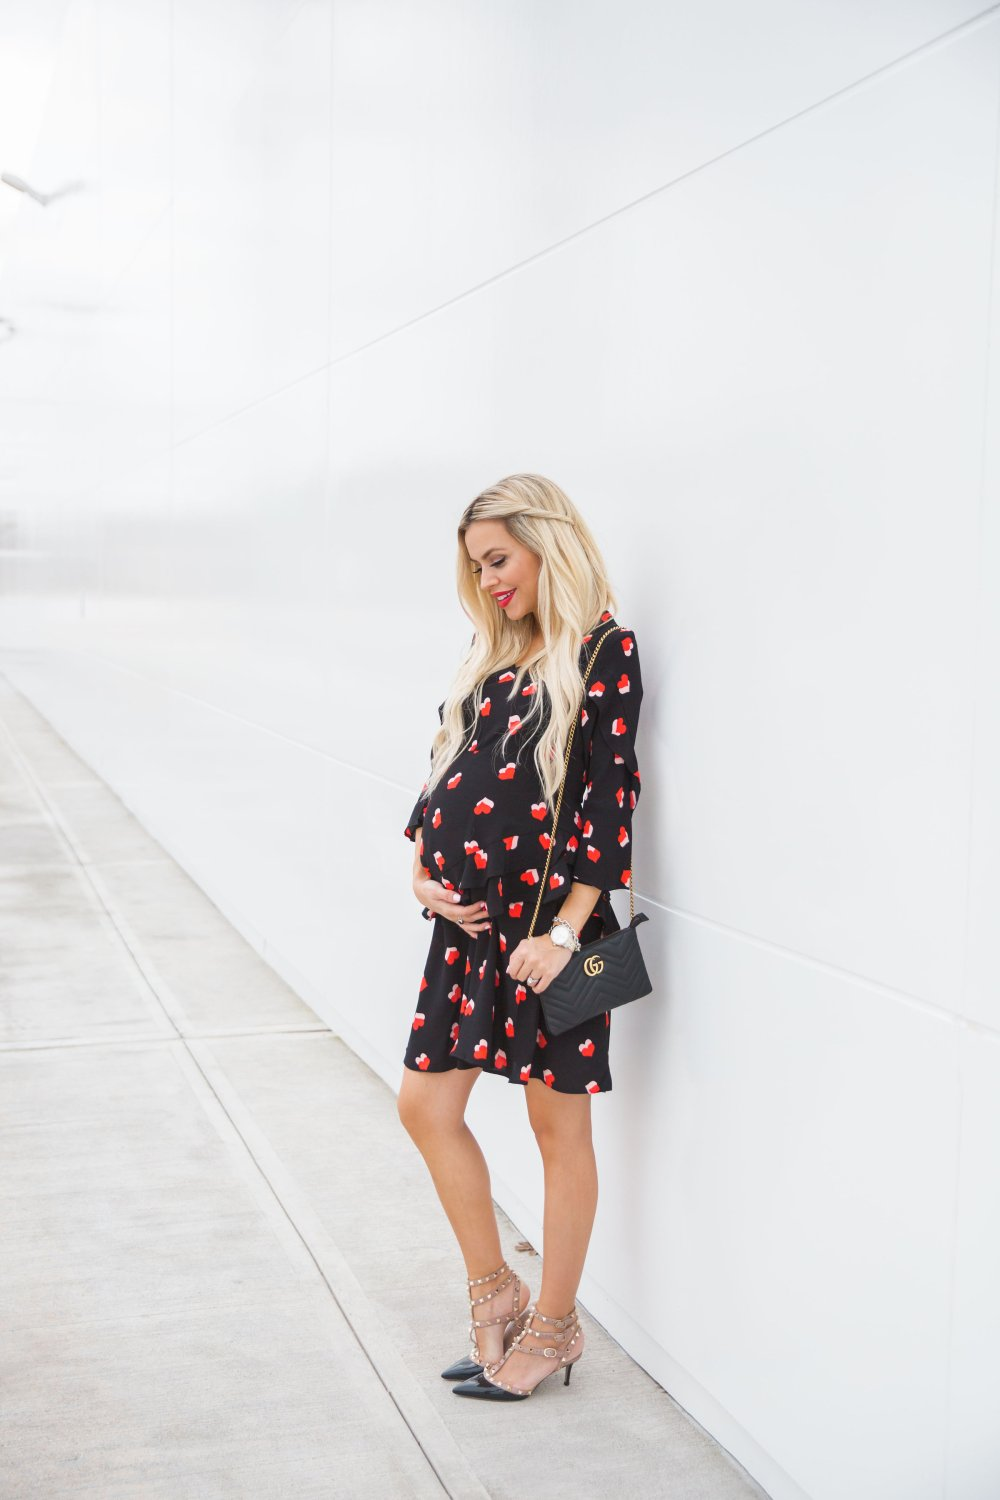 This maternity heart dress is perfect for Valentine's Day or any time of the year!